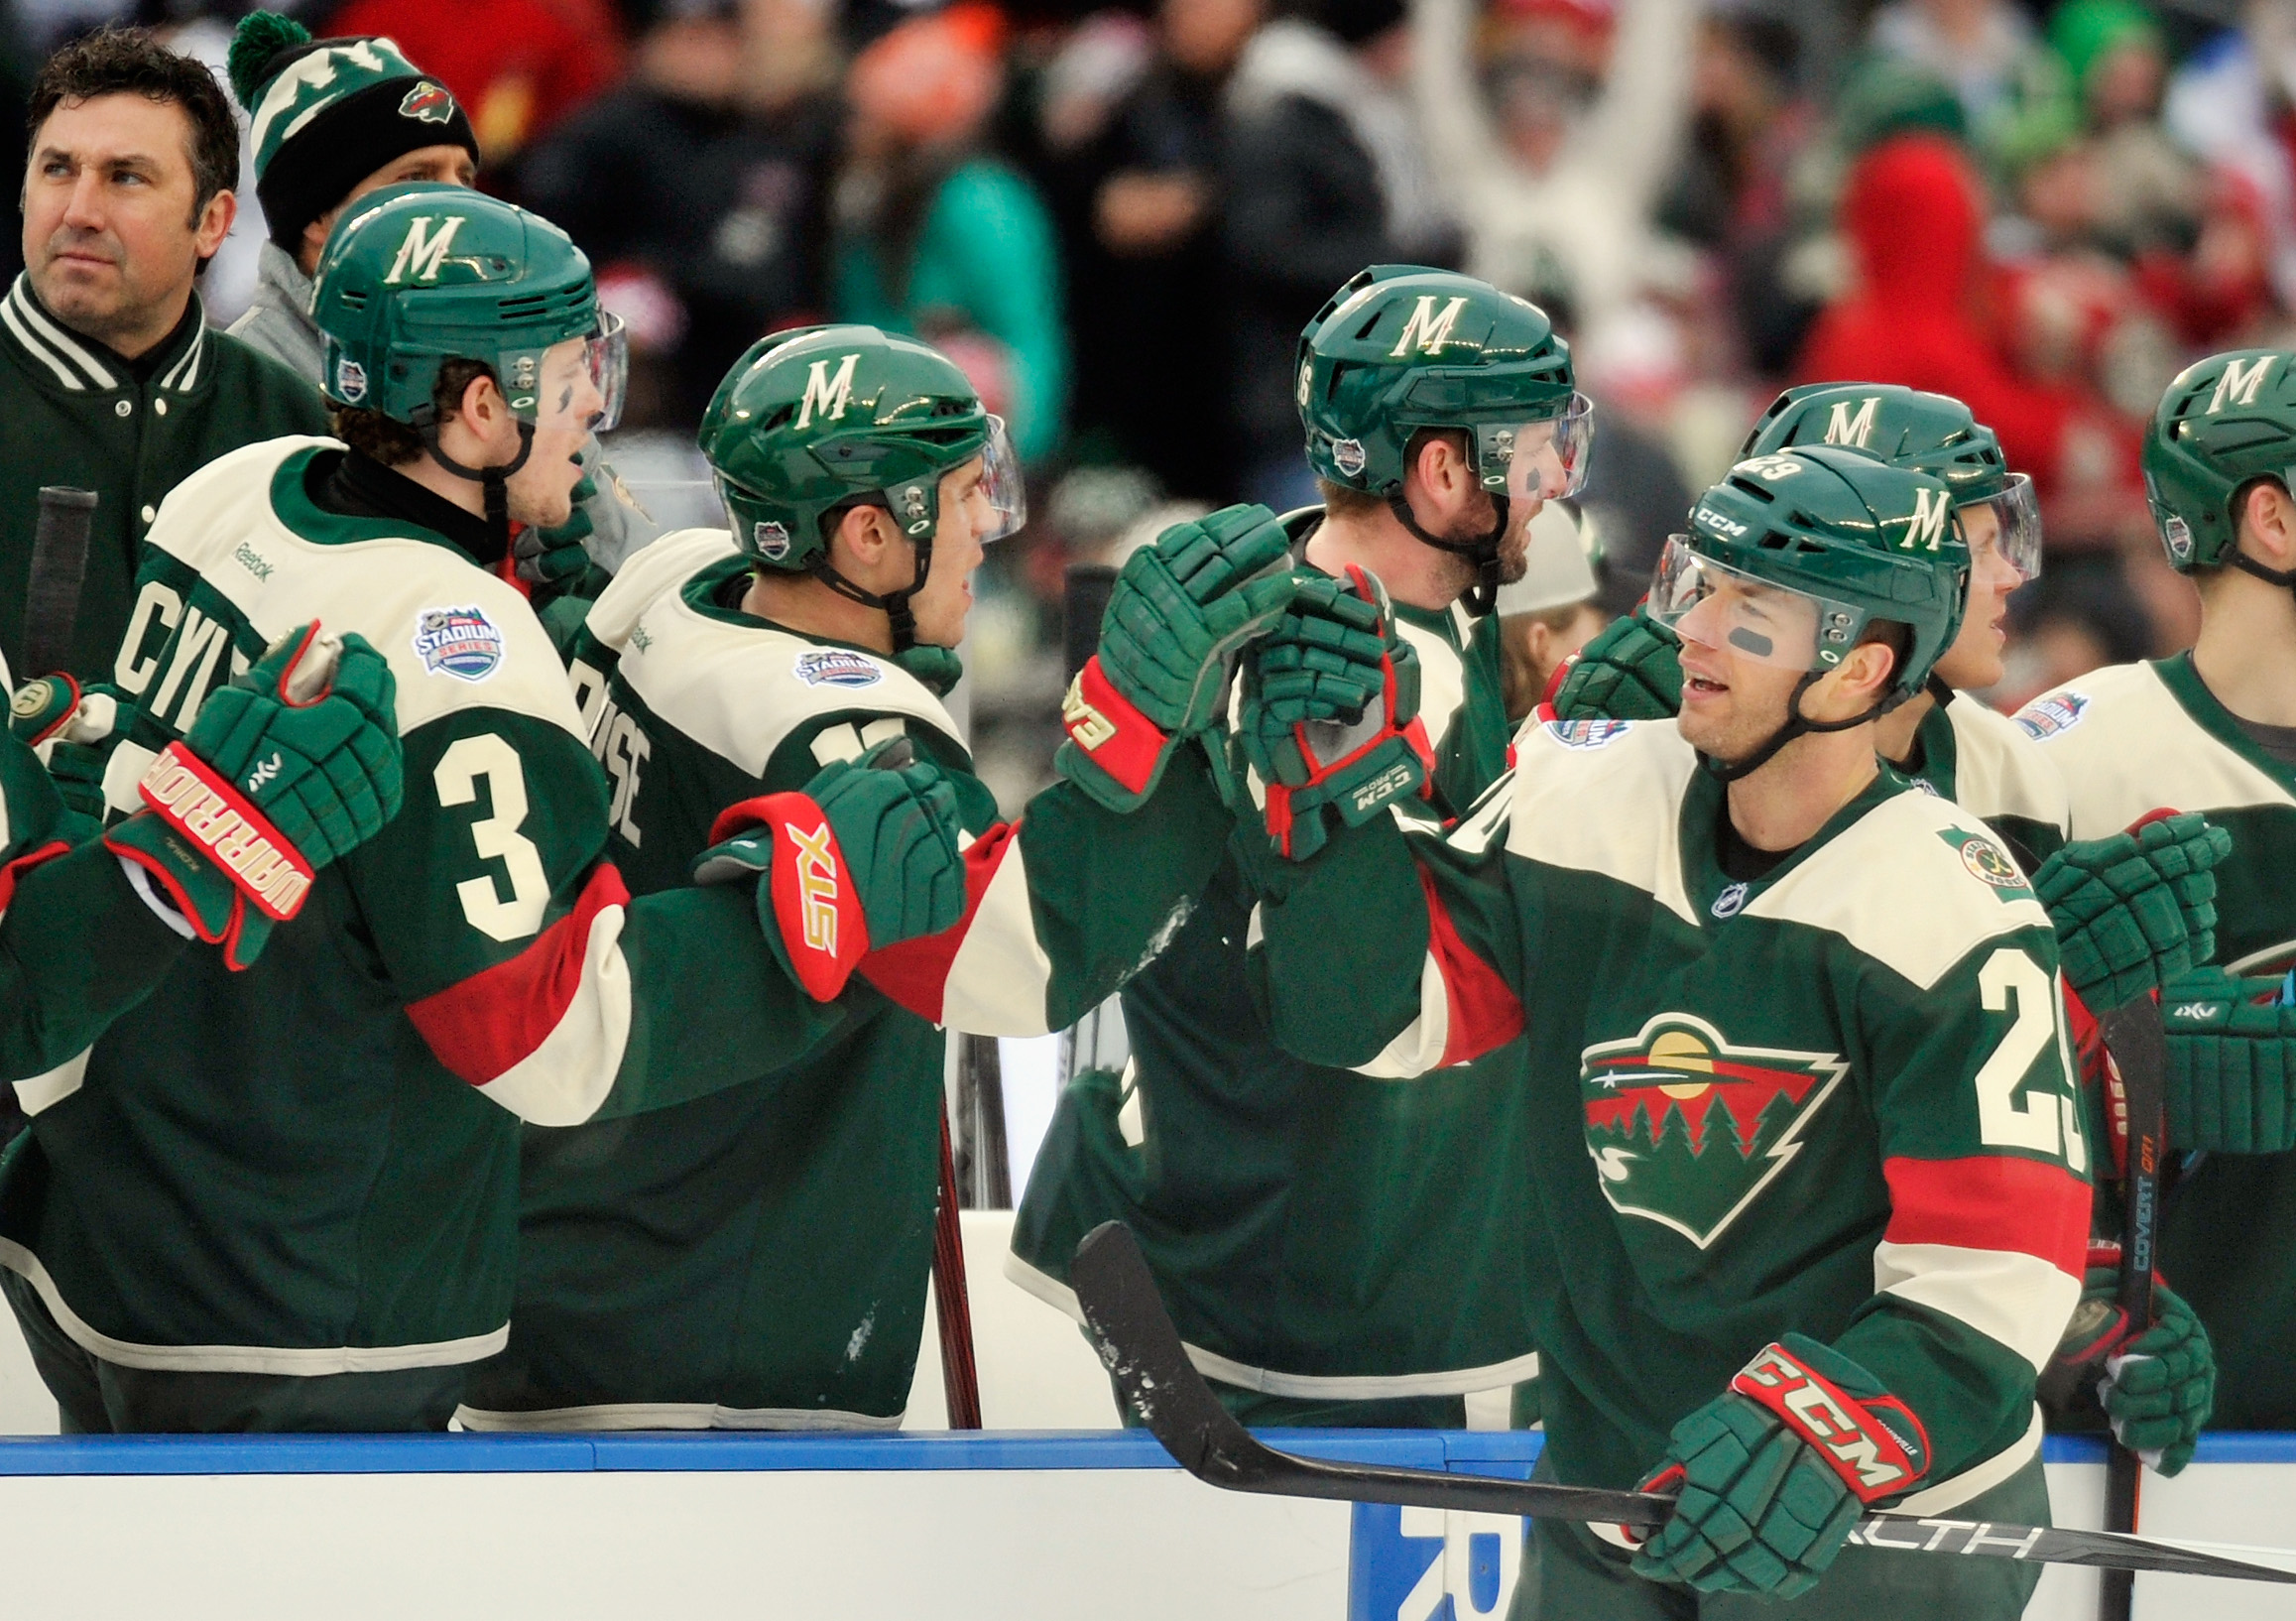 Jason Pominville (right) celebrates his goal for the Wild during the team's outdoor game at TCF Bank Stadium on  Feb. 21 (Getty Images).